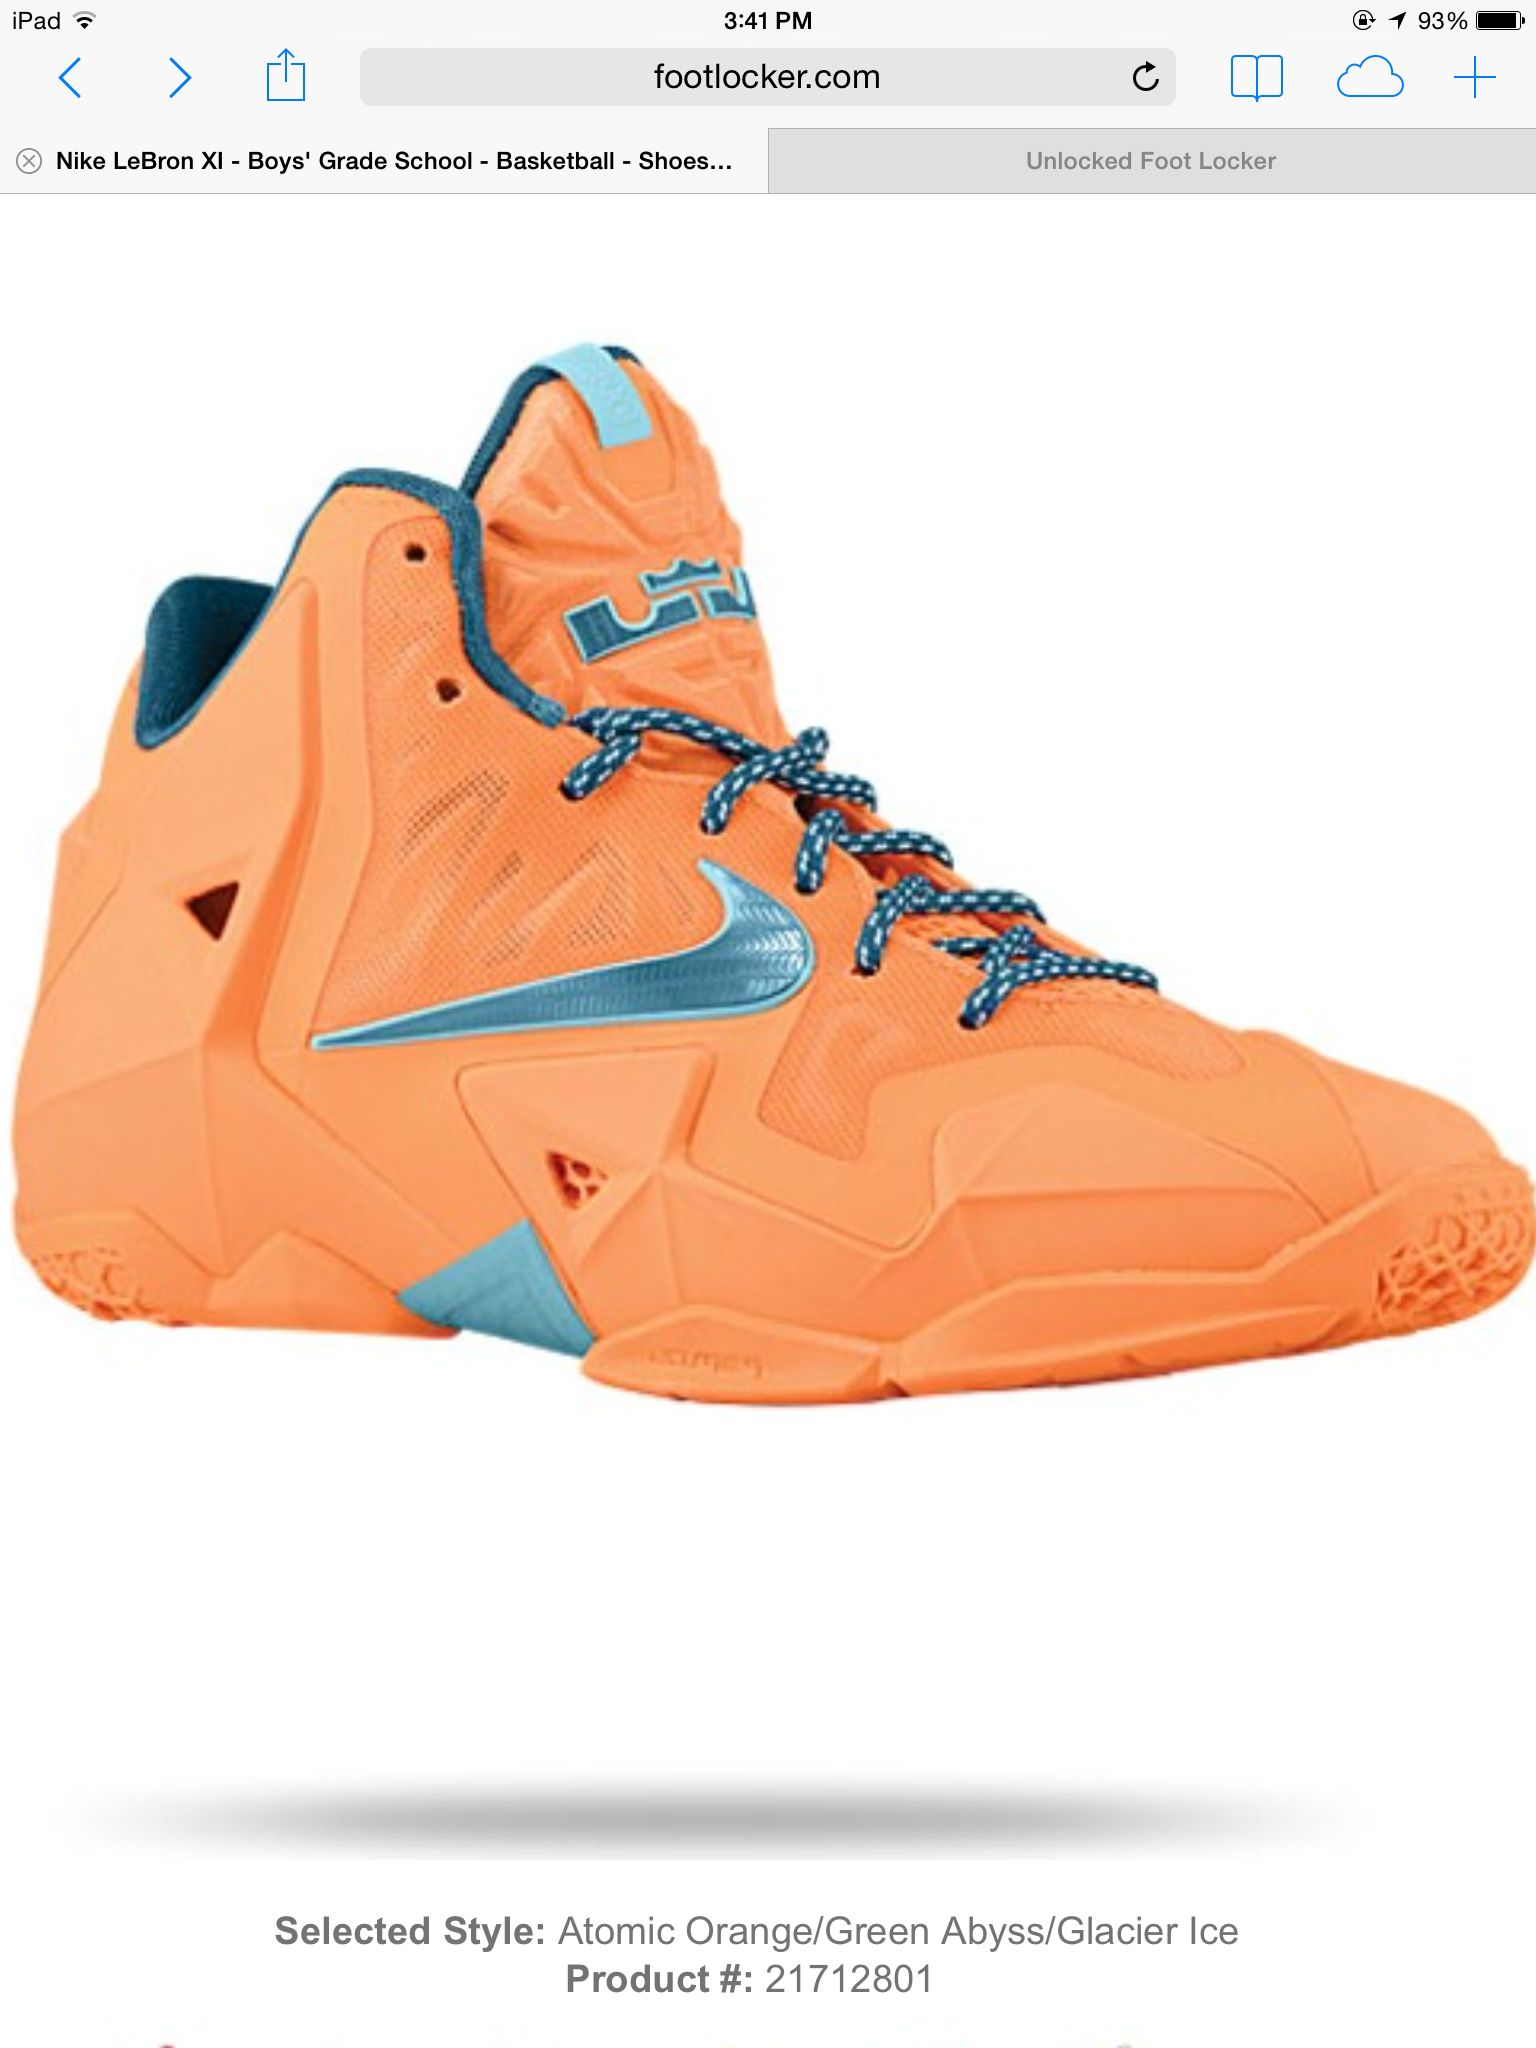 competitive price 36240 30123 Lebrons Lebron 11, Nike Lebron, Foot Locker, Basketball Shoes, Casual Wear,